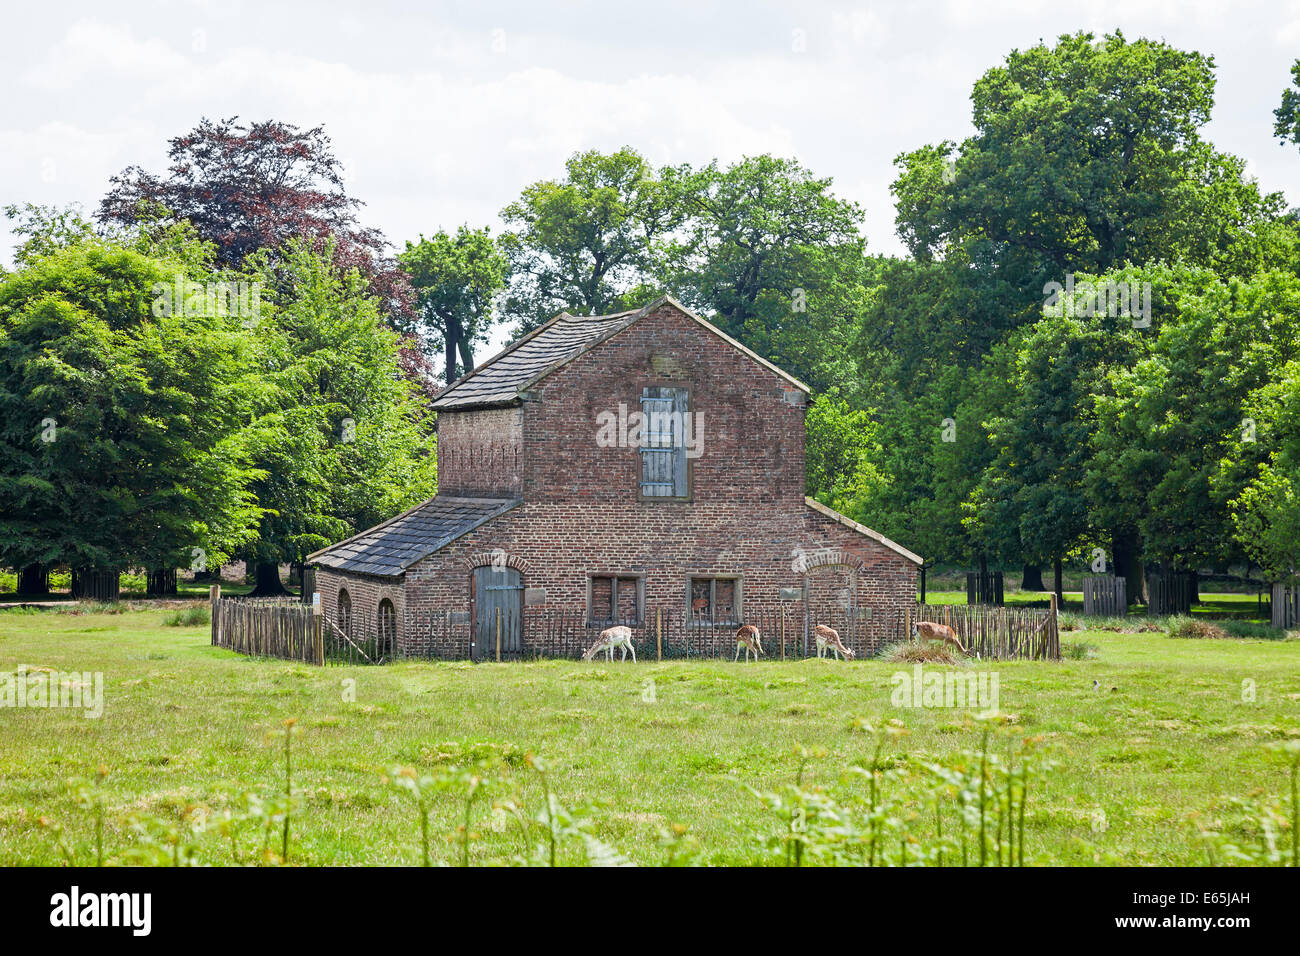 18th century Deer House, Dunham Massey Hall and Park, Altrincham, Greater Manchester Cheshire - Stock Image